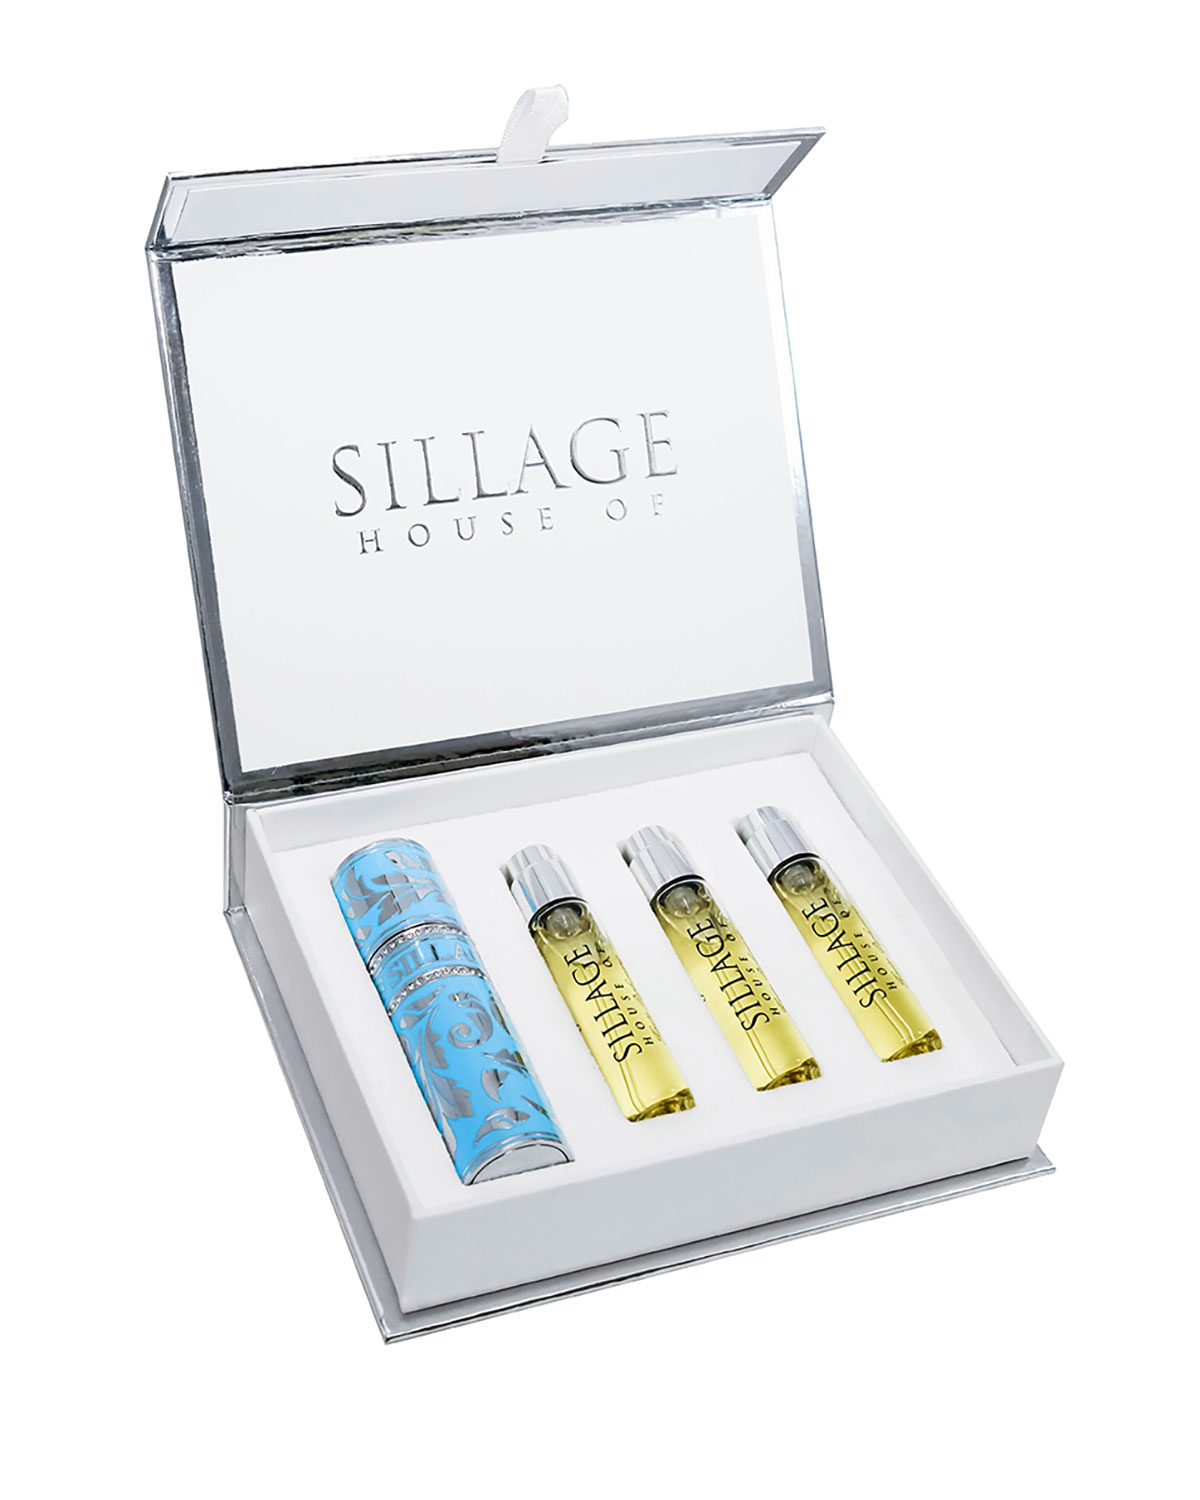 HOUSE OF SILLAGE Holiday Travel Spray With Refills, 0.3 Oz./ 8.0 Ml